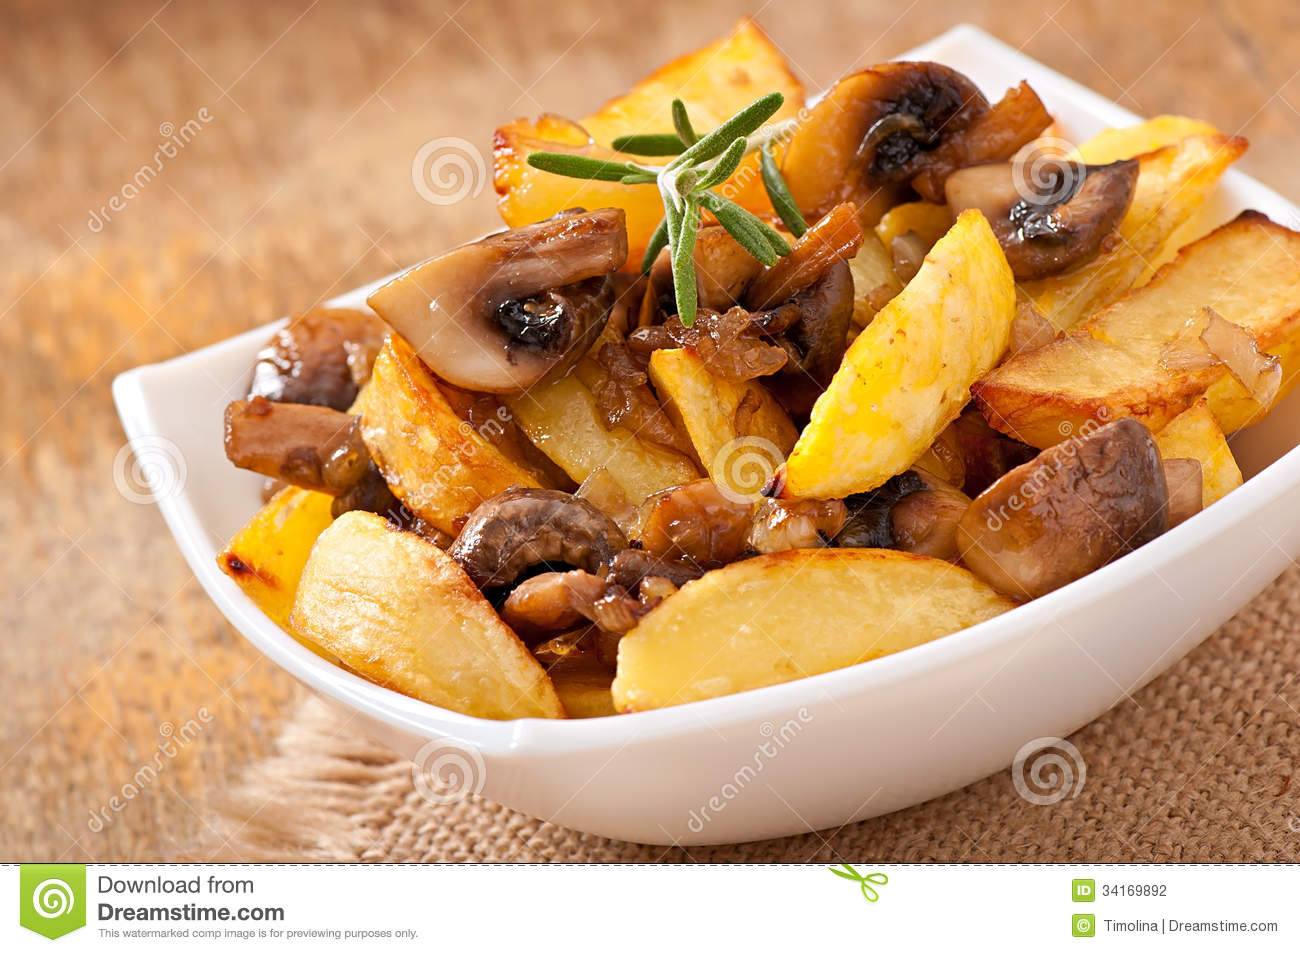 How to fry potatoes with mushrooms 52